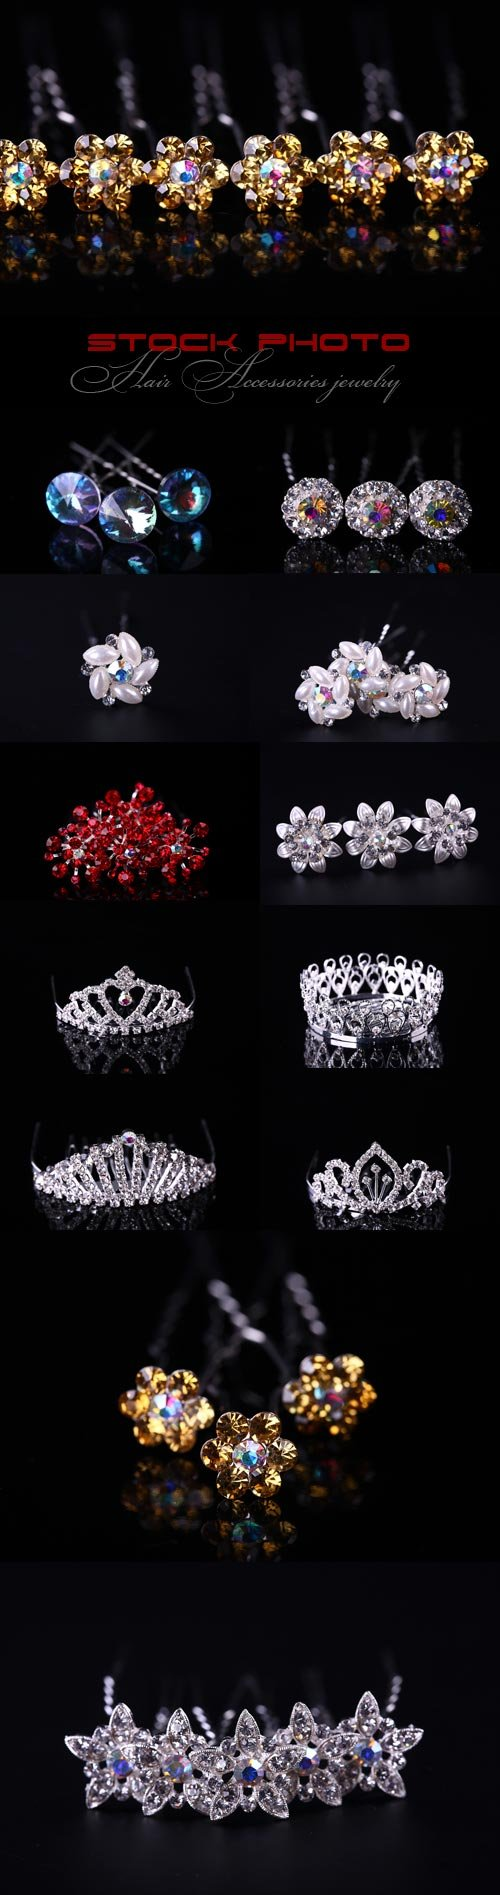 Hair Accessories jewelry